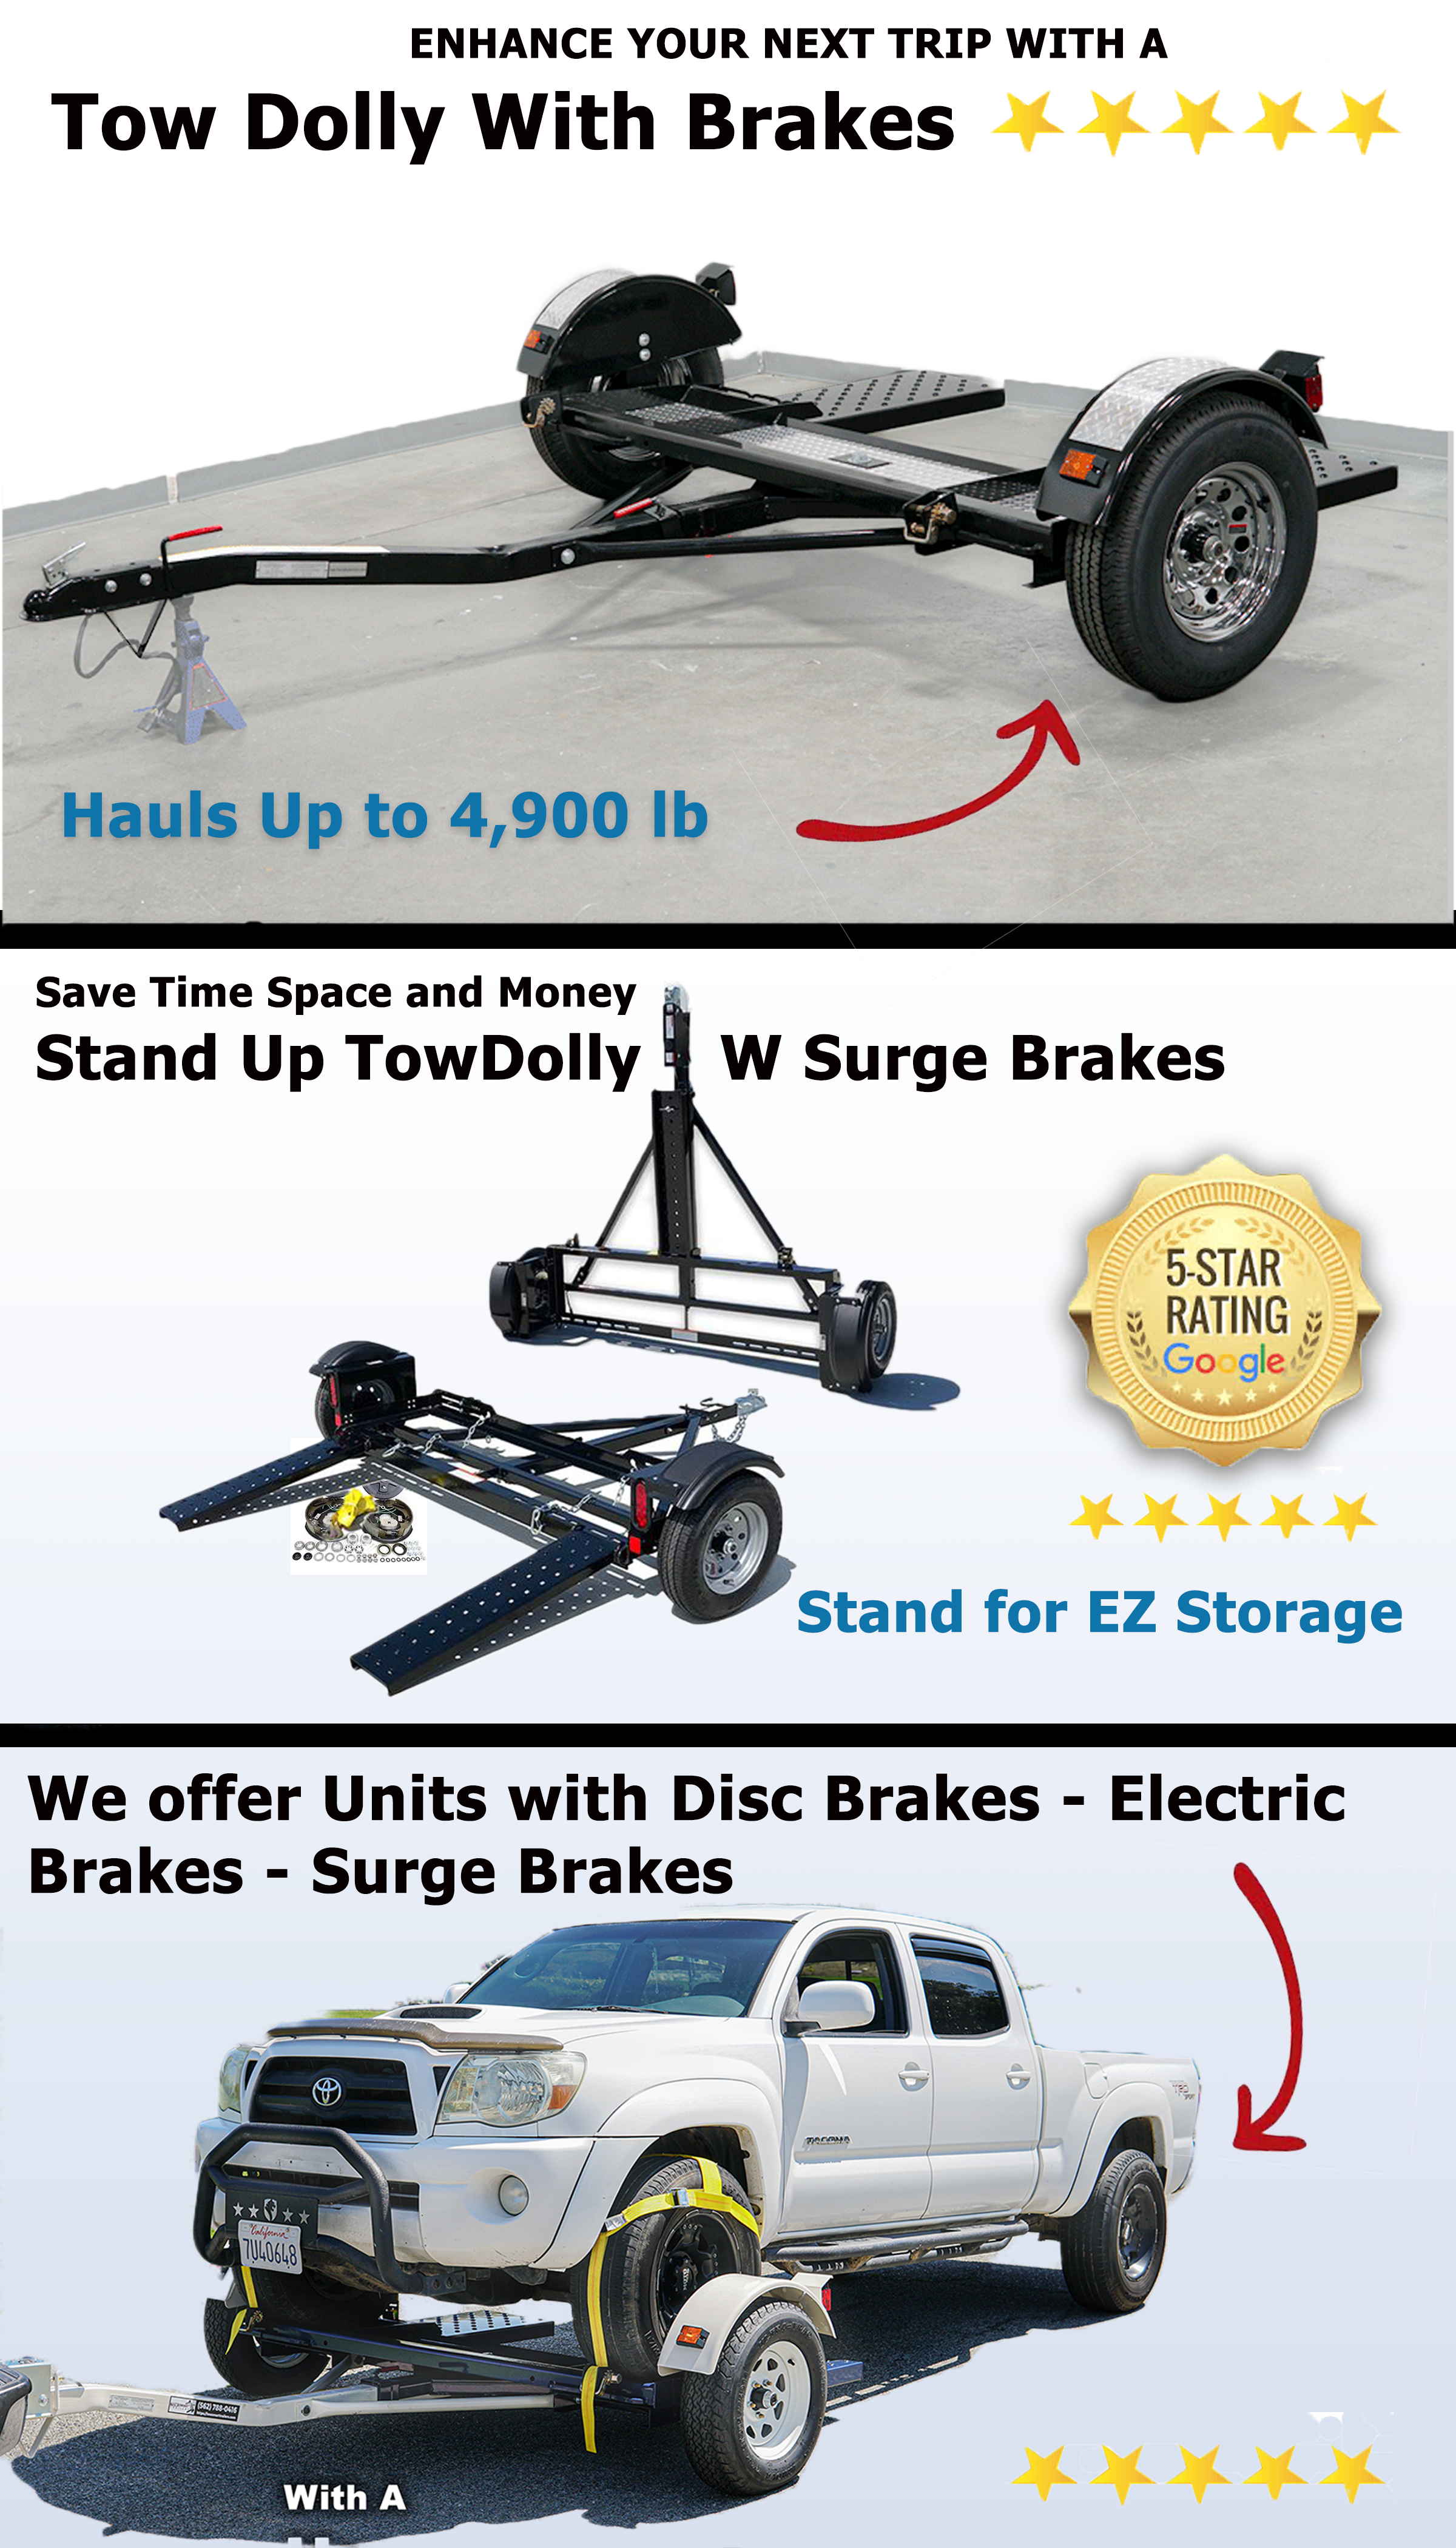 car tow dolly with brakes dolly with brakes cartowdolly.com stand up tow dolly master tow dolly